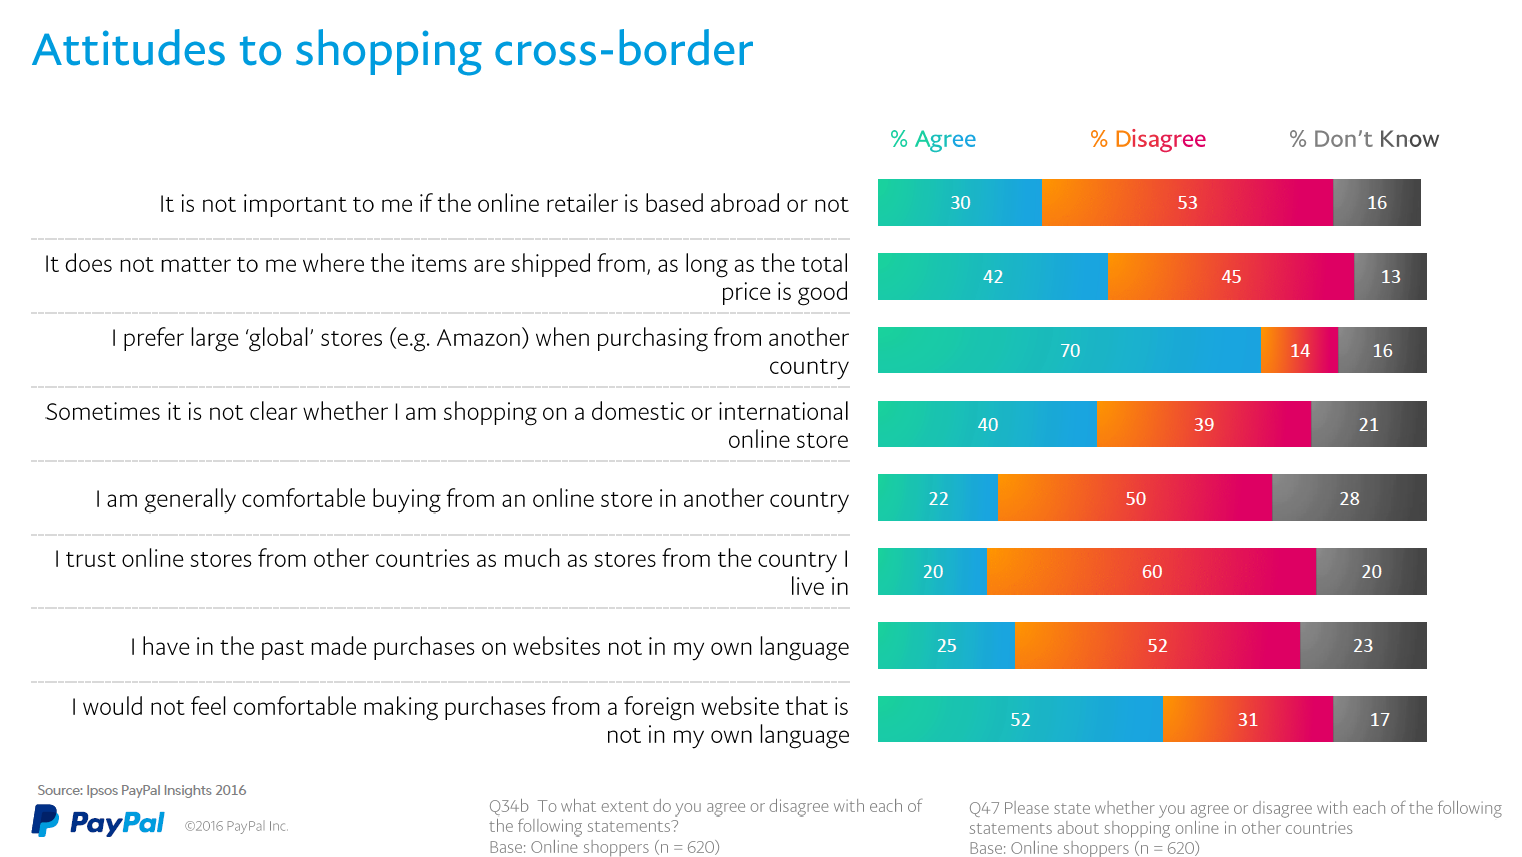 German attitudes to cross-border shopping